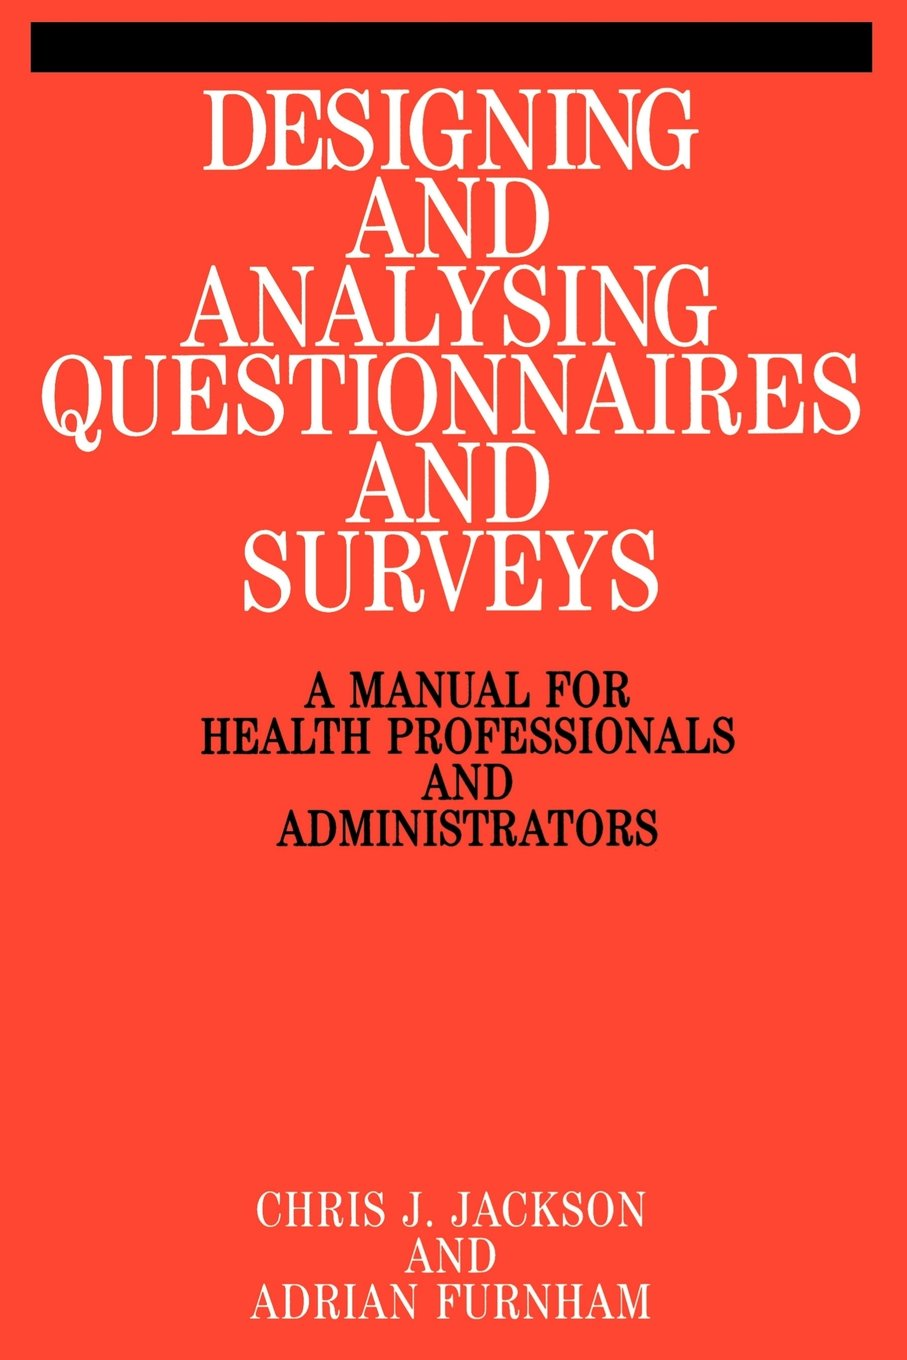 Designing And Analysing Questionnaires And Surveys: A Manual For Health  Professionals And Administrators: Chris Jackson, Adrian Furnham:  9781861560728: